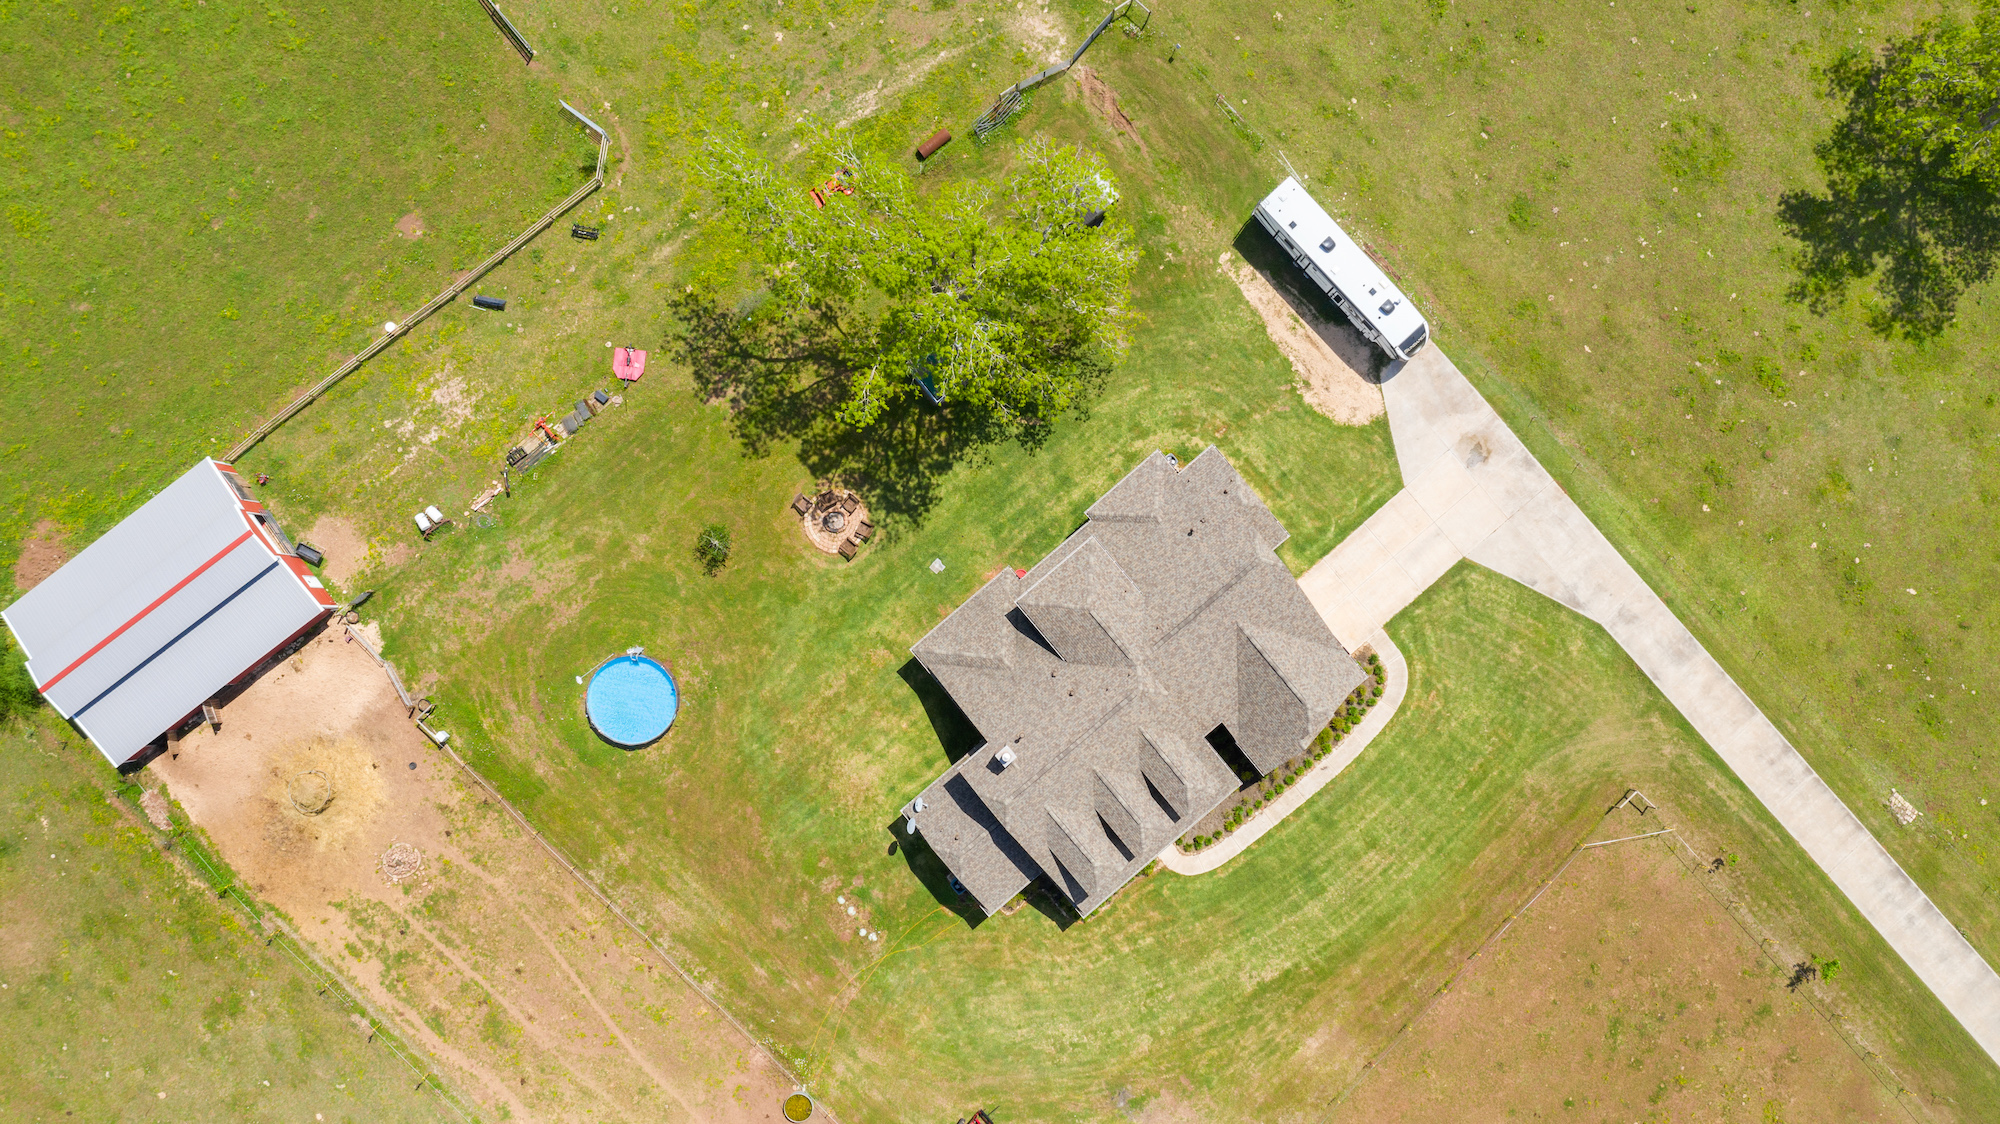 Custom Country Home with Acreage in Sealy - Image 6 of 46